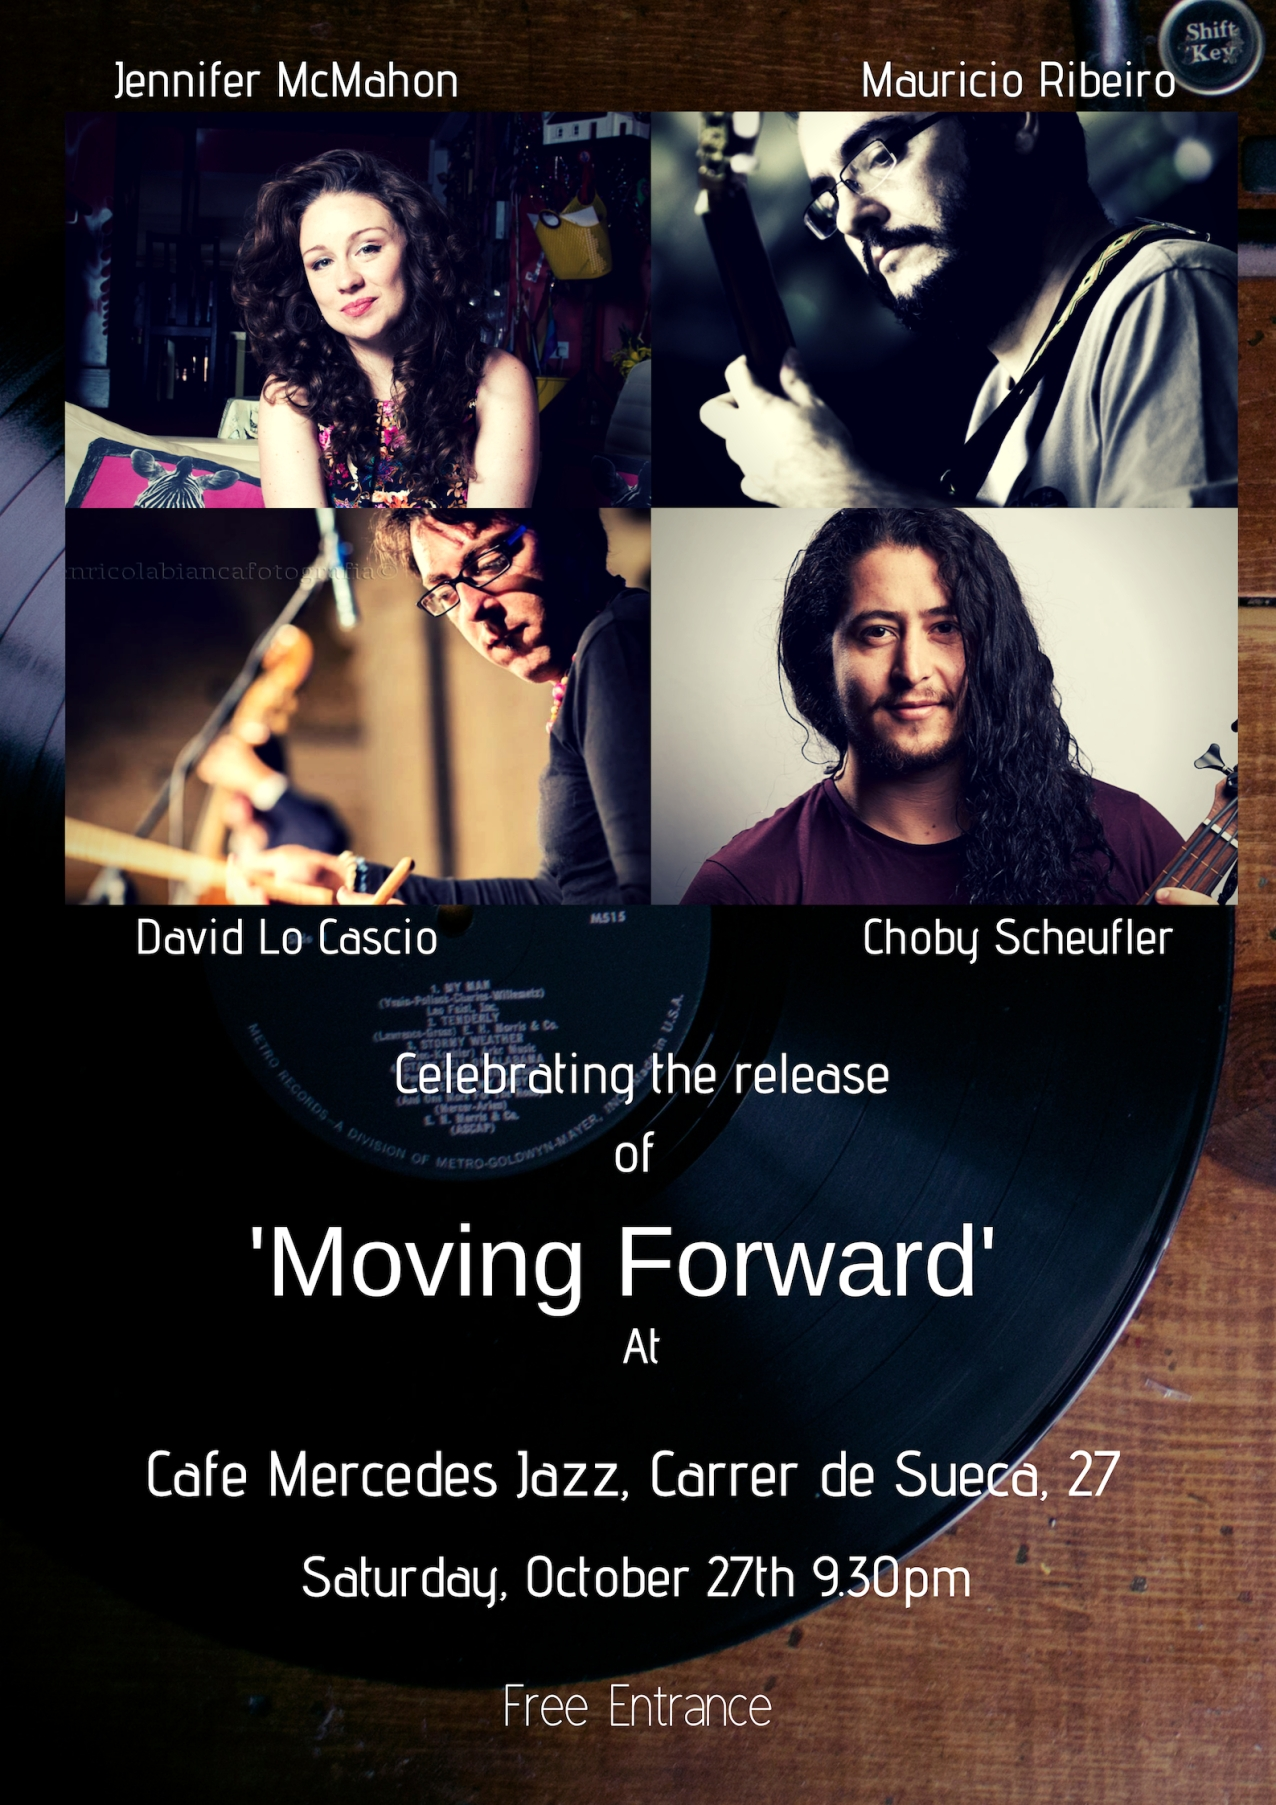 moving forwardlaunch party!